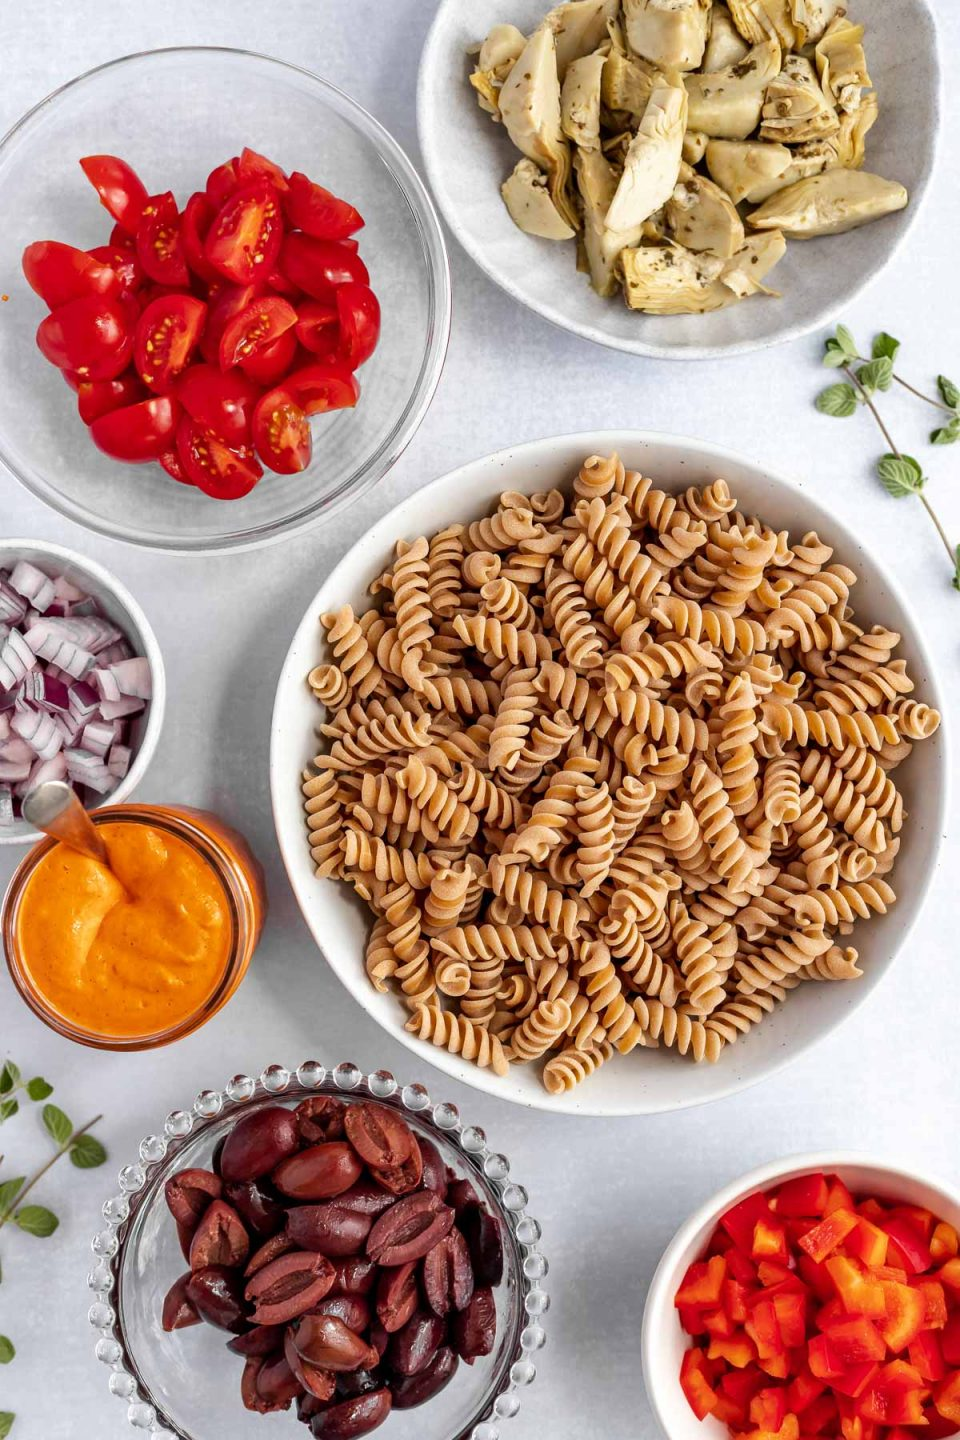 Vegan Italian pasta salad ingredients arranged on a light blue surface in individual bowls: artichoke hearts, diced bell pepper, diced red onion, fusilli pasta, kalamata olives, & halved cherry tomatoes.